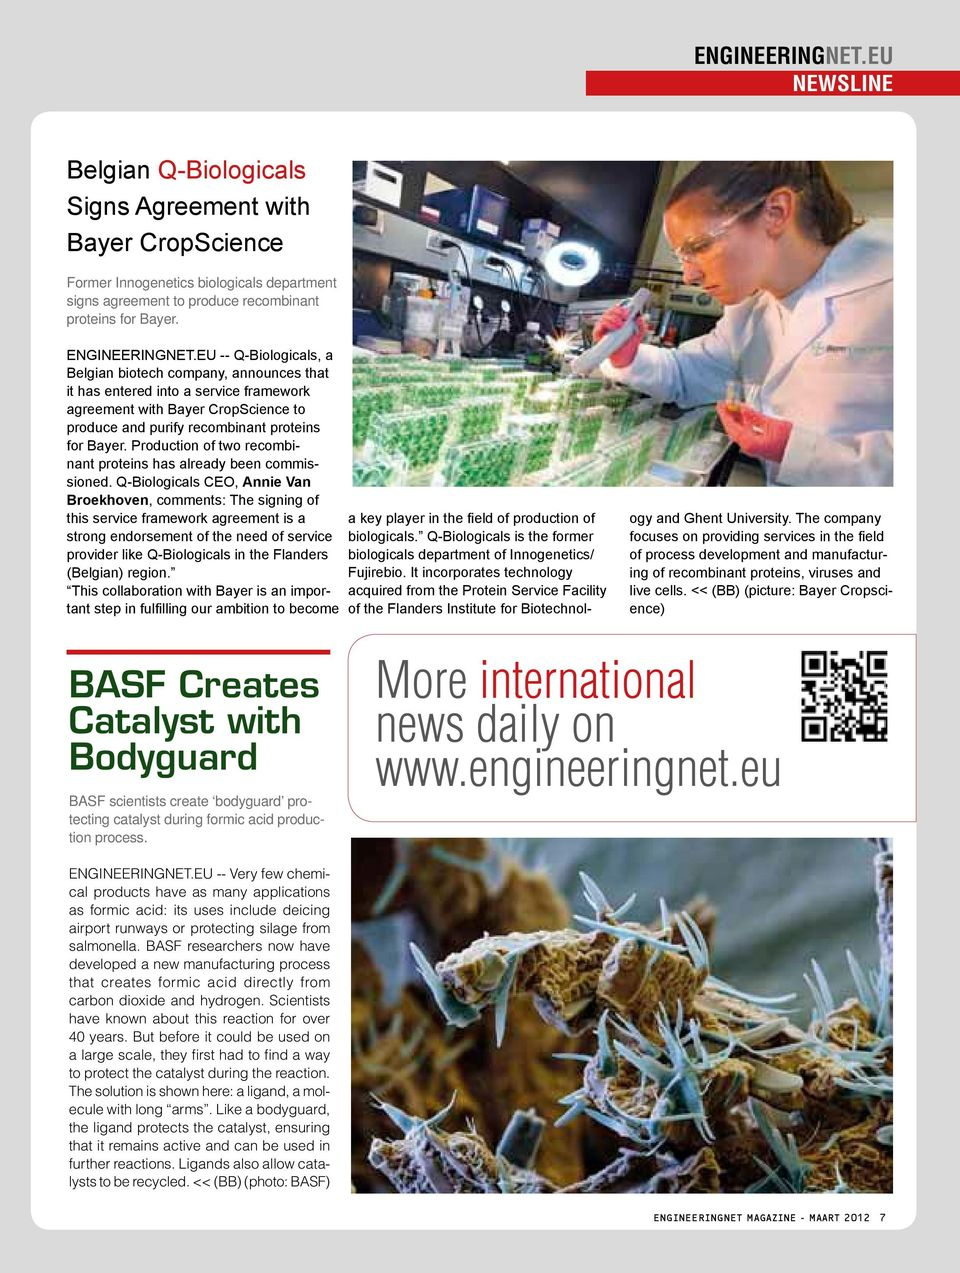 EU -- Q-Biologicals, a Belgian biotech company, announces that it has entered into a service framework agreement with Bayer CropScience to produce and purify recombinant proteins for Bayer.